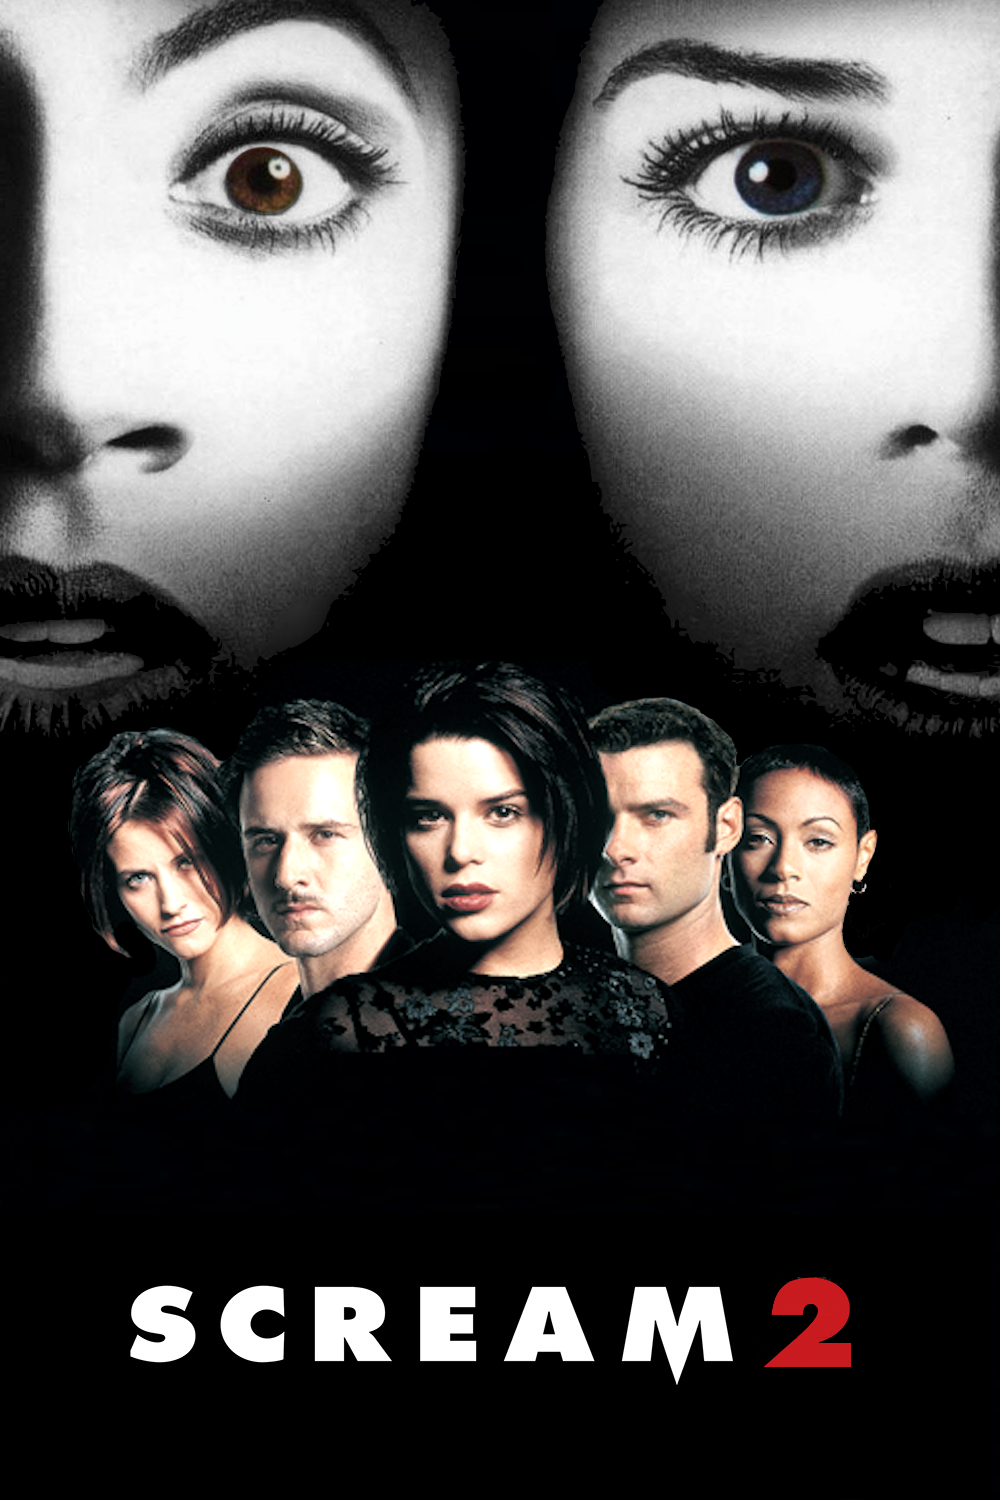 scream2posterr.png